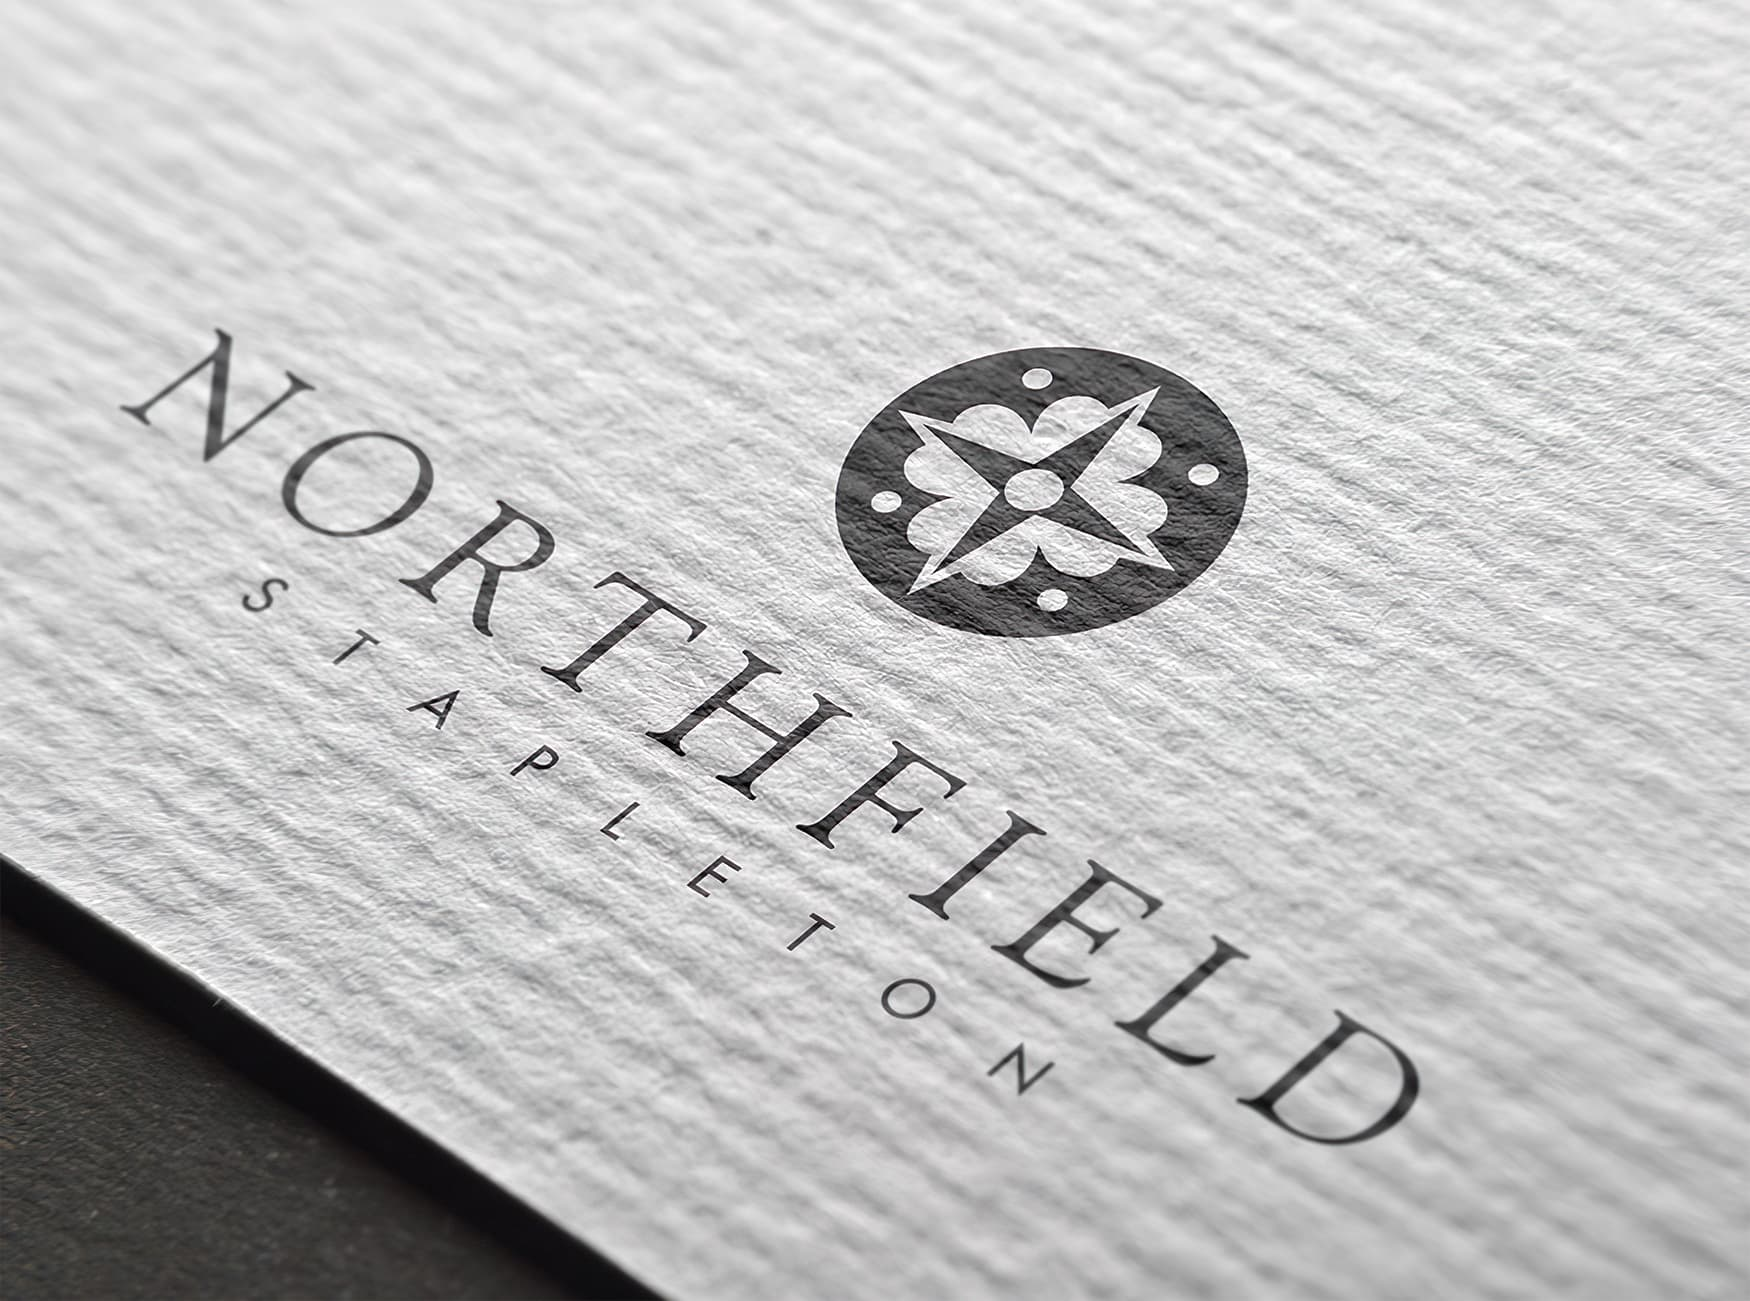 Northfield Stapleton Mall, an open-air retail center near Denver, Colorado. Branding and Logo design.